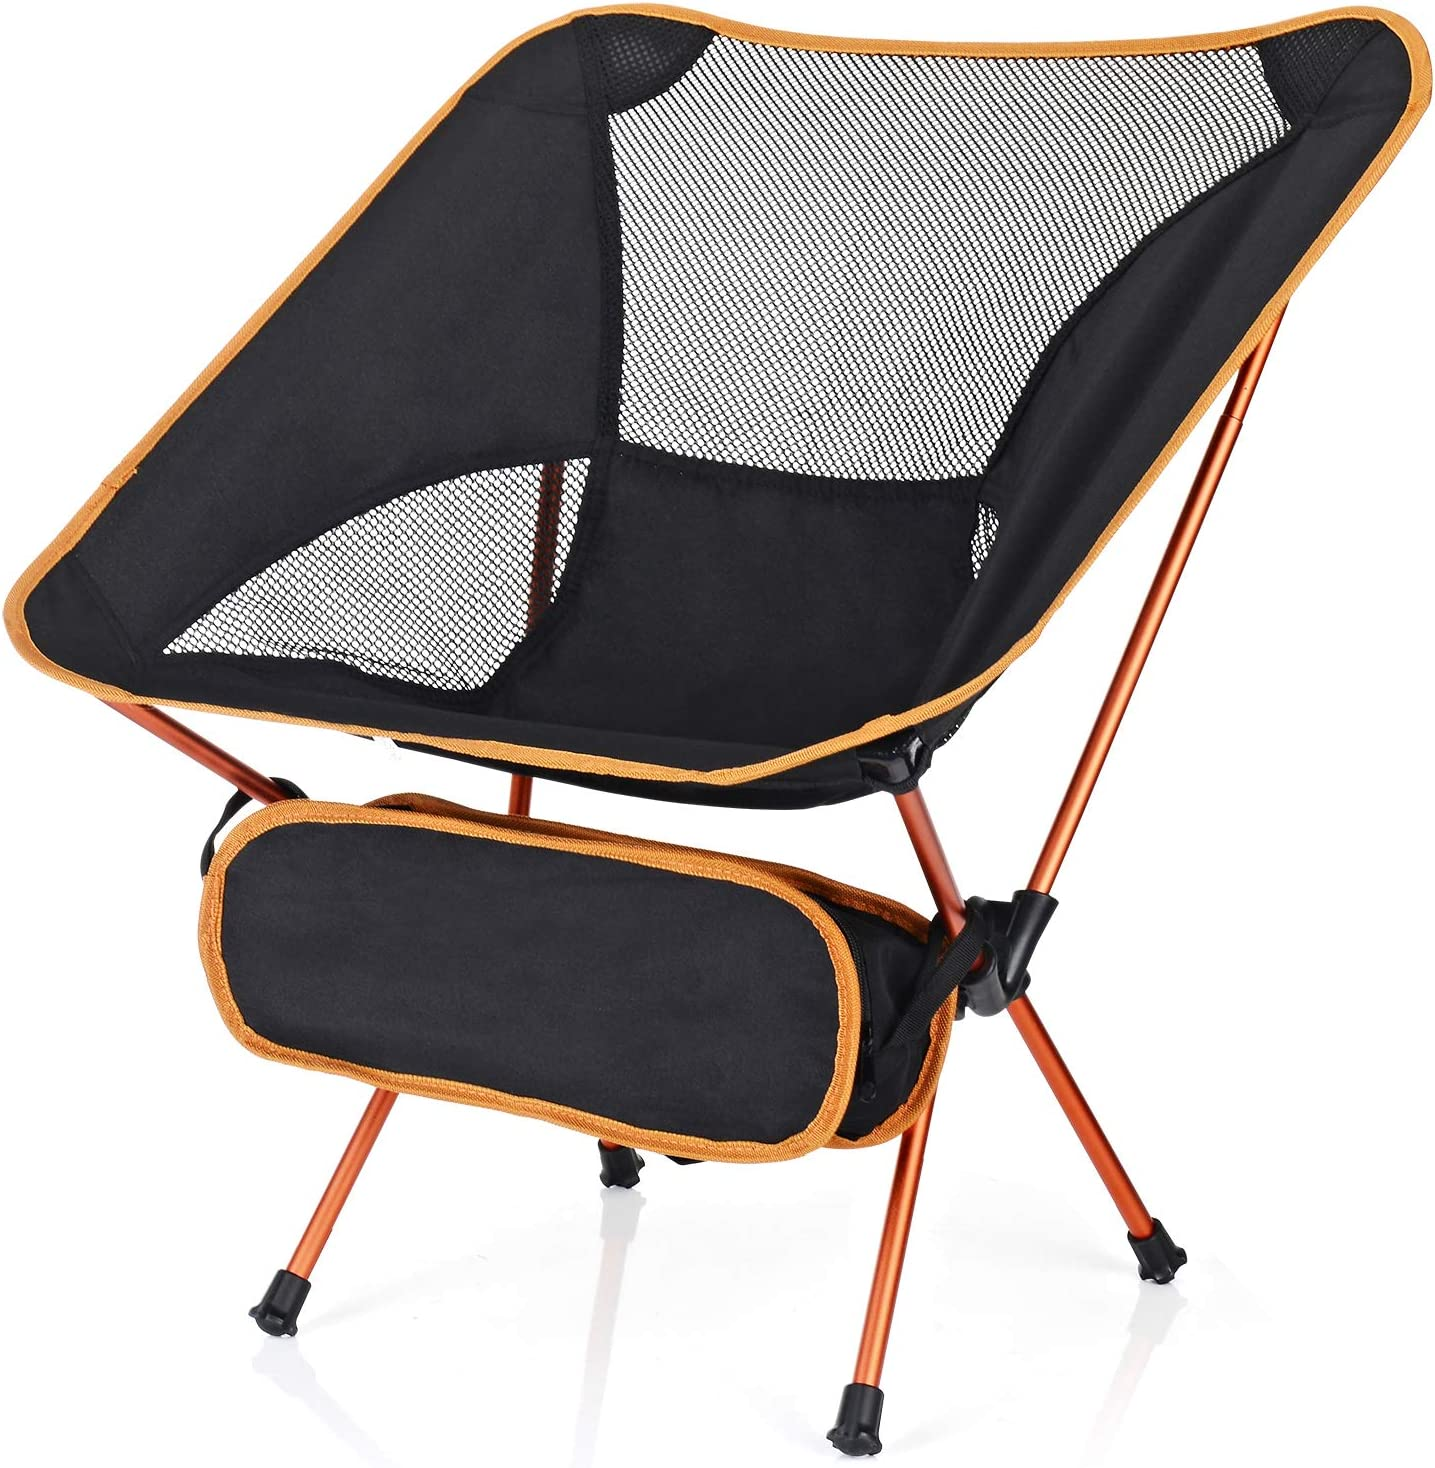 US Outdoor Fold Up Chairs Beach Ultralight Portable Camping Seat With Carry Bag